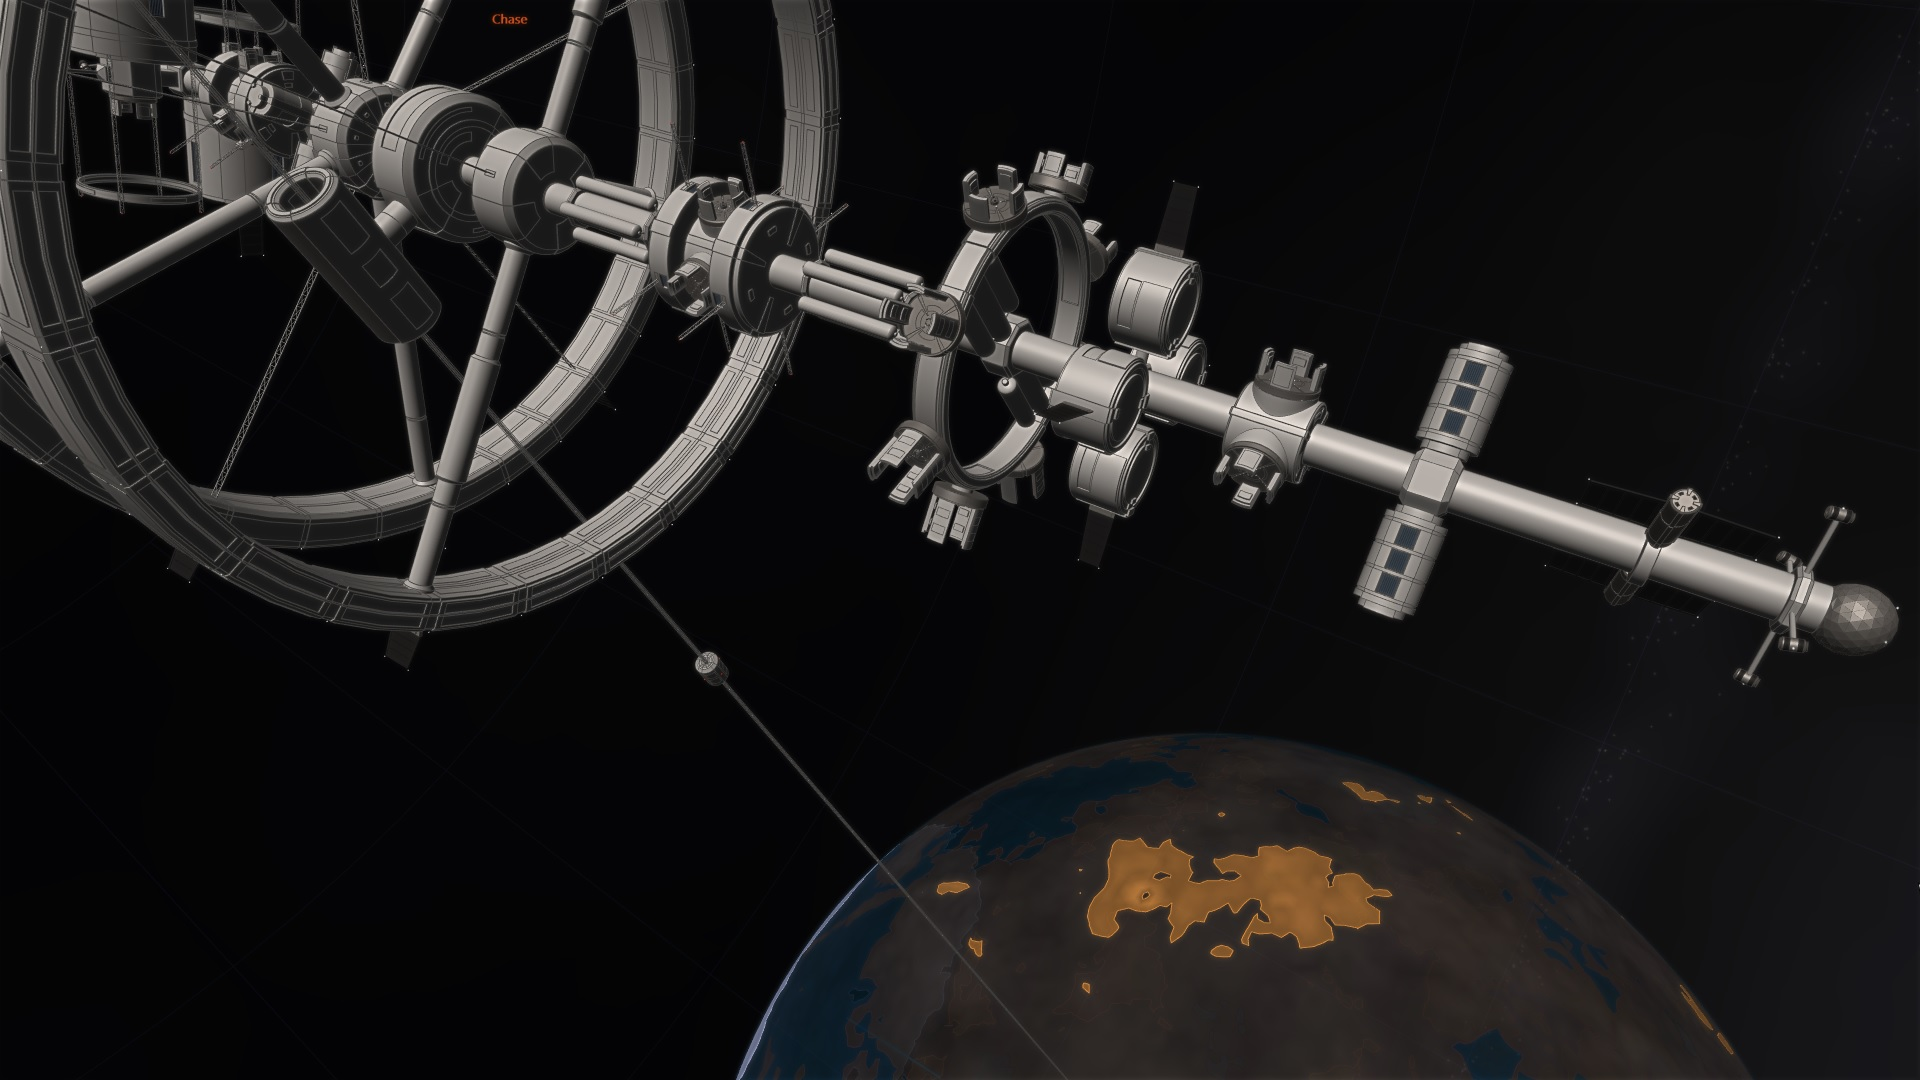 ASG space elevator